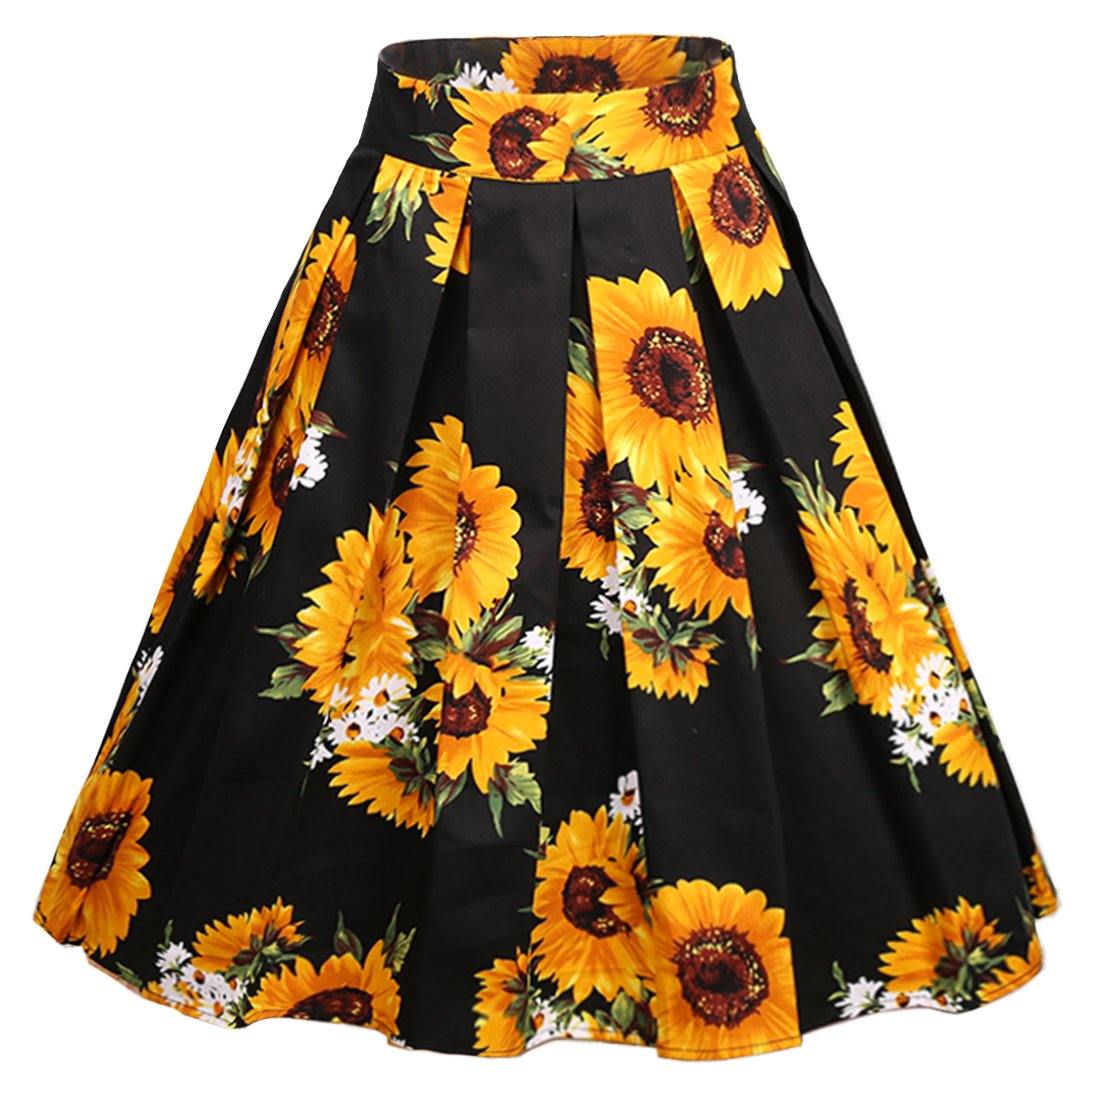 Dressever Women's Vintage A-line Printed Pleated Flared Midi Skirts Sunflower Small